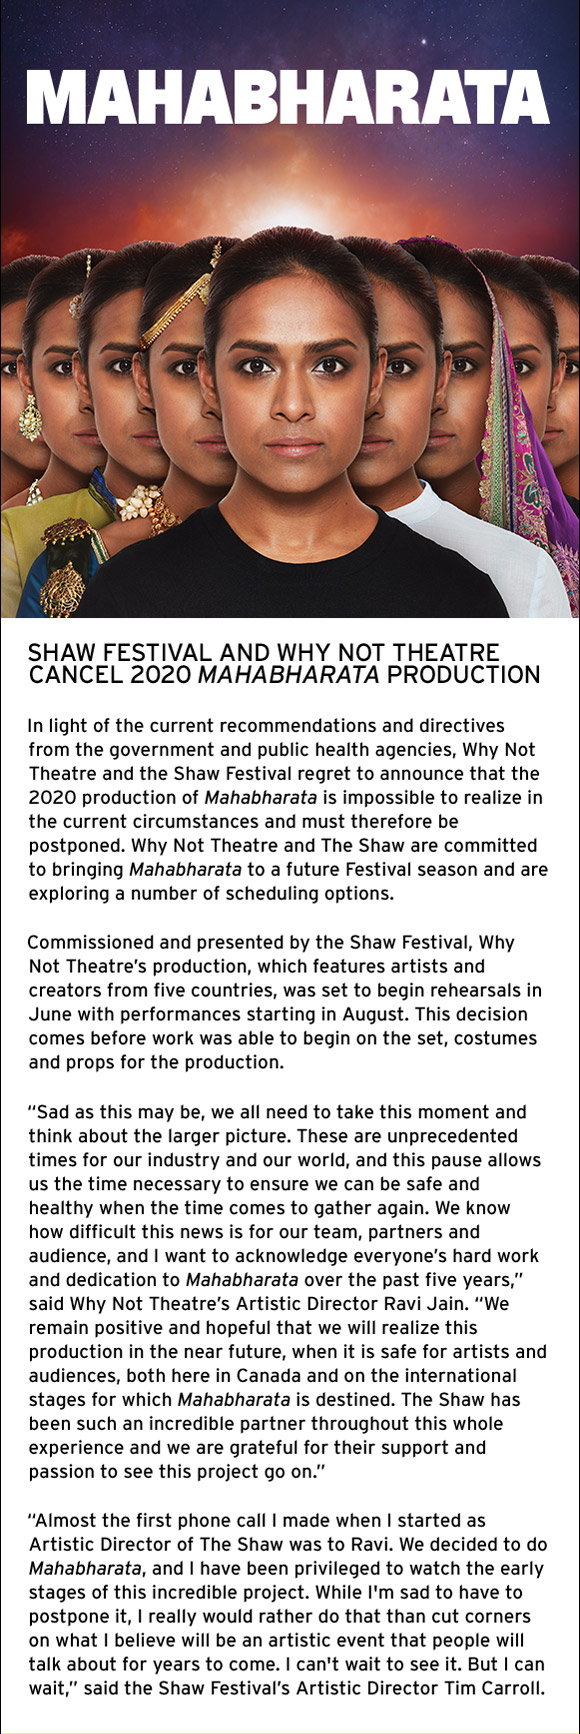 In light of the current recommendations and directives from the government and public health agencies, Why Not Theatre and the Shaw Festival regret to announce that the 2020 production of Mahabharata is impossible to realize in the current circumstances and must therefore be postponed. Why Not Theatre and The Shaw are committed to bringing Mahabharata to a future Festival season and are exploring a number of scheduling options.